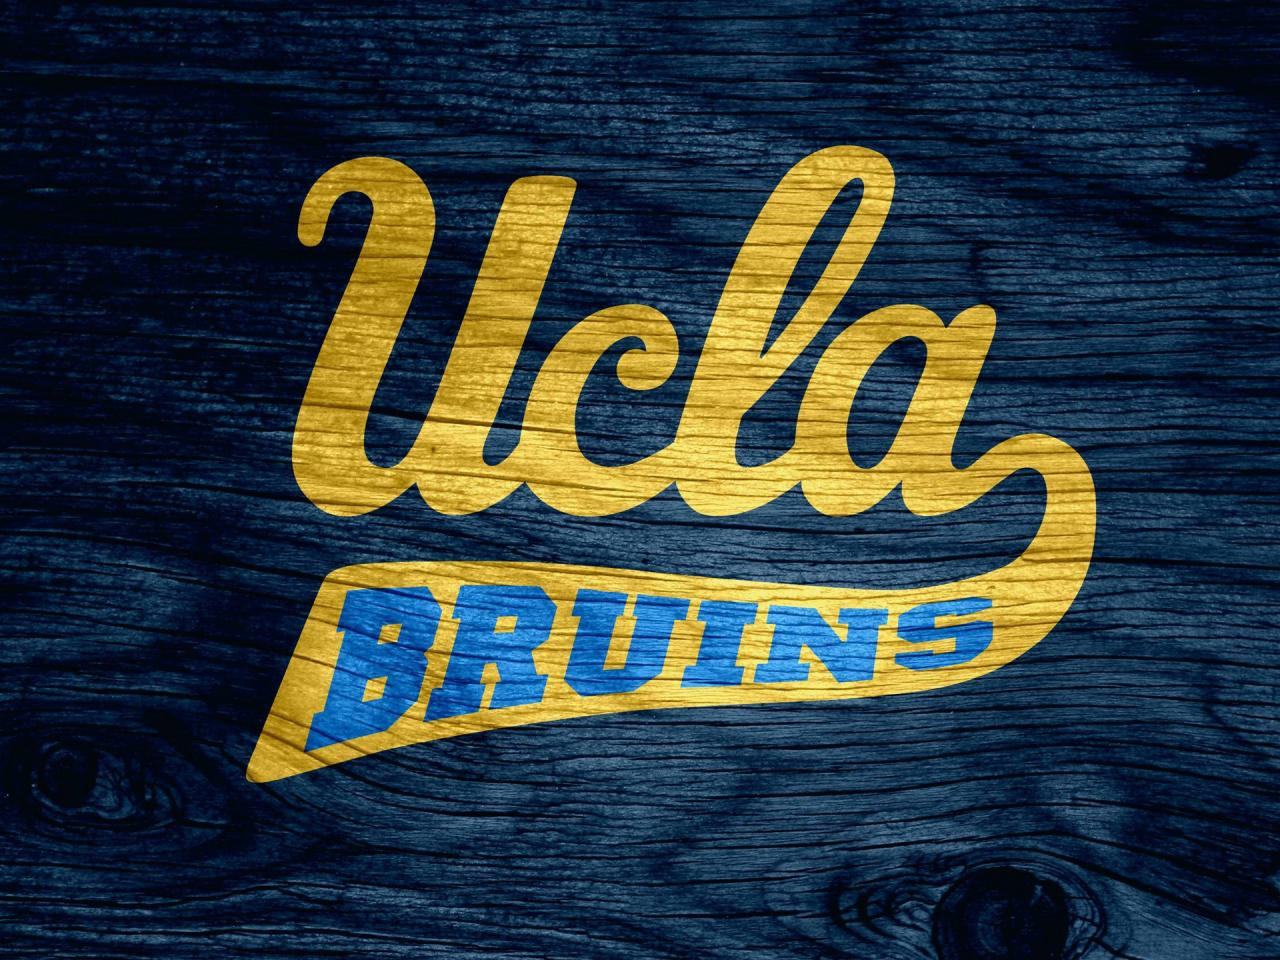 Ucla Bruins Wallpaper With Wood Pattern Background Hd